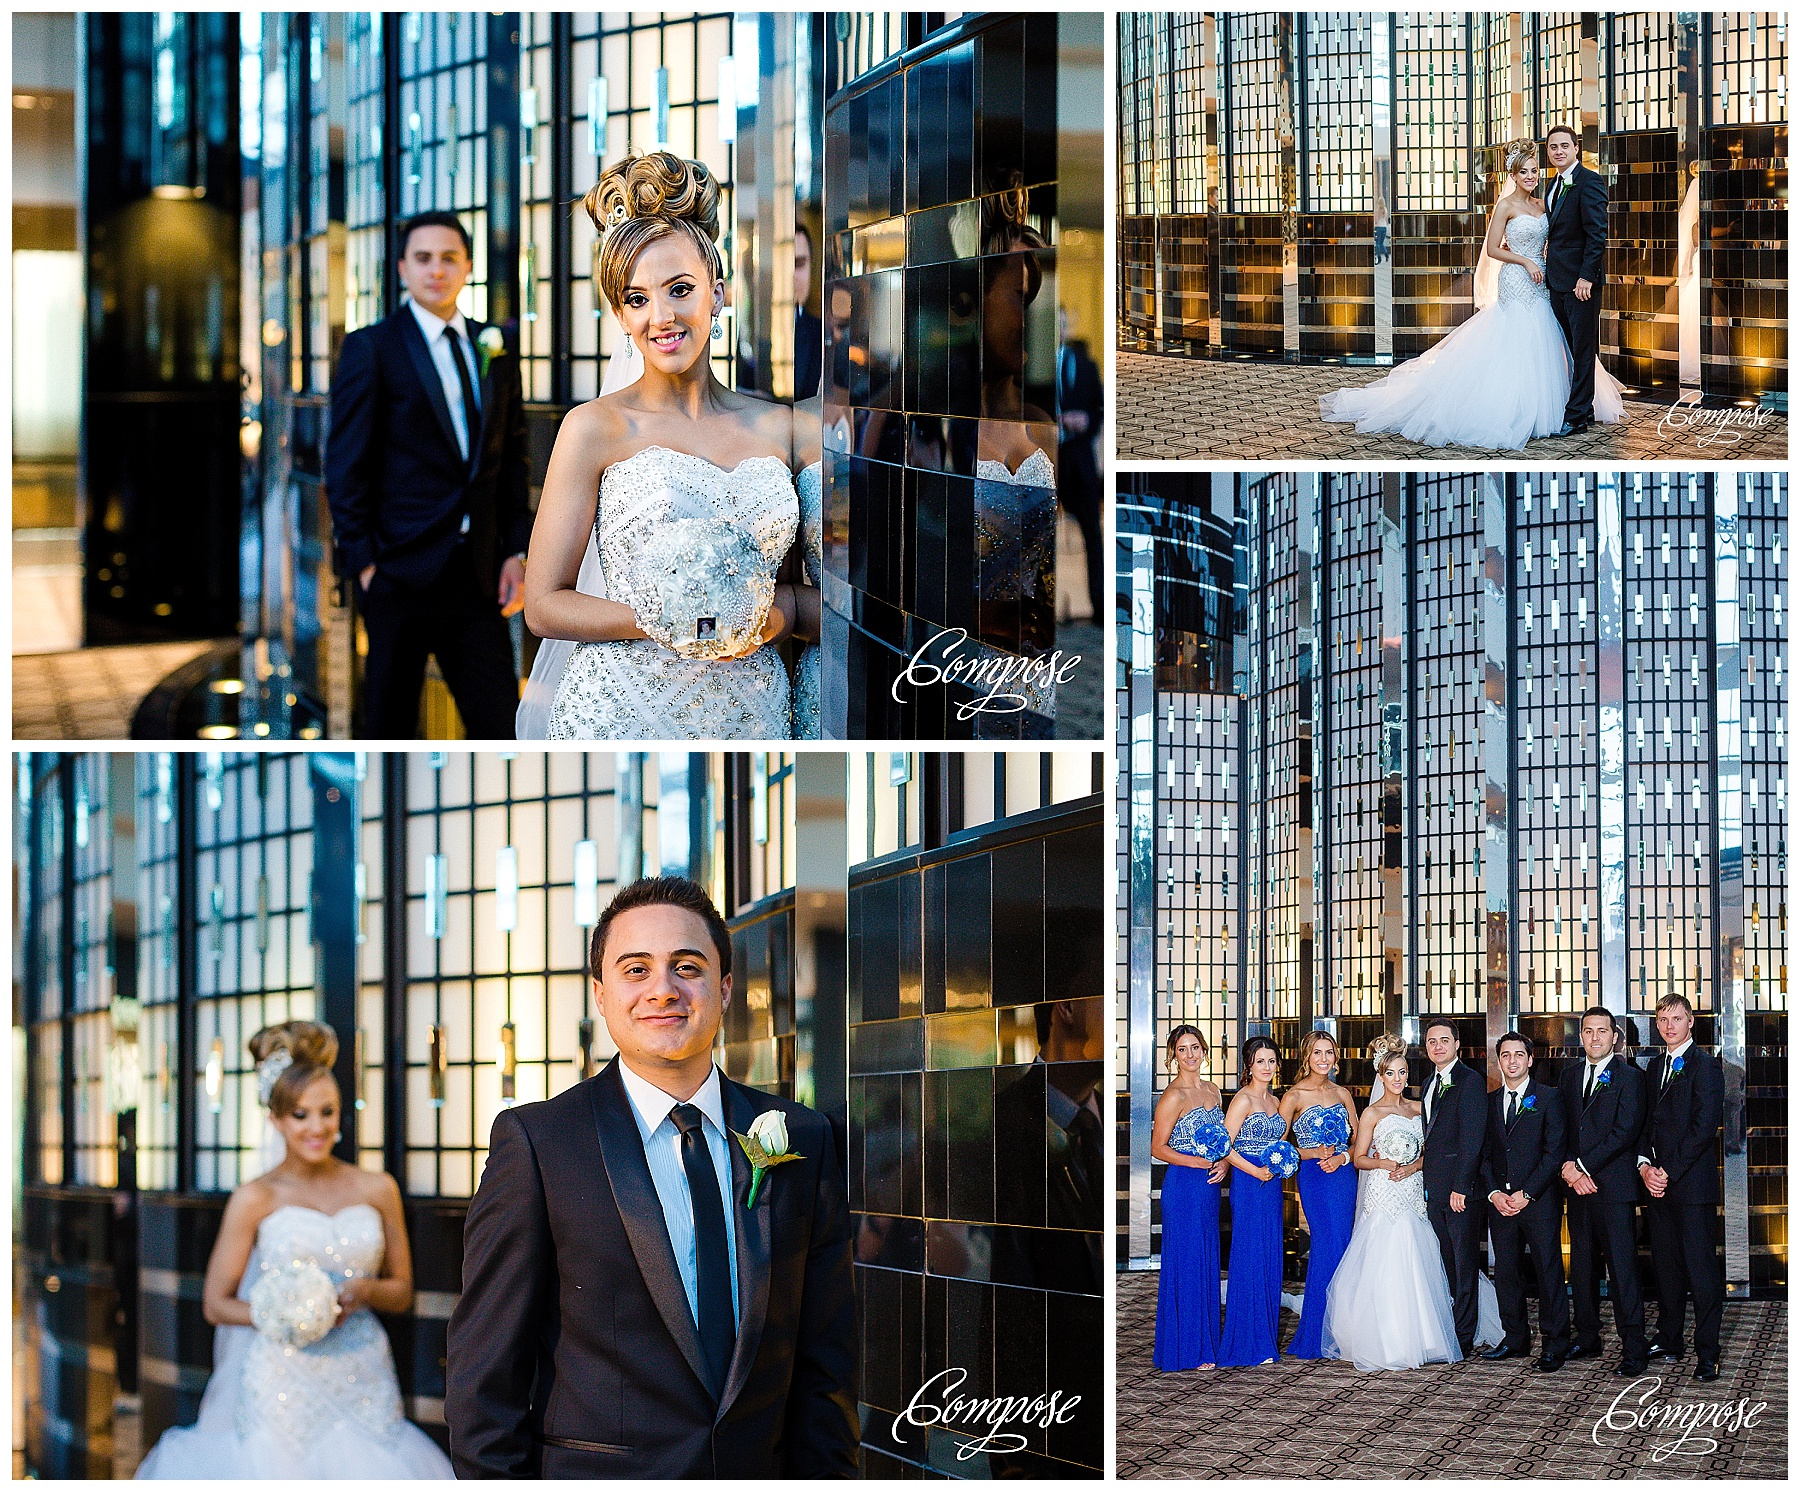 Crown wedding photography